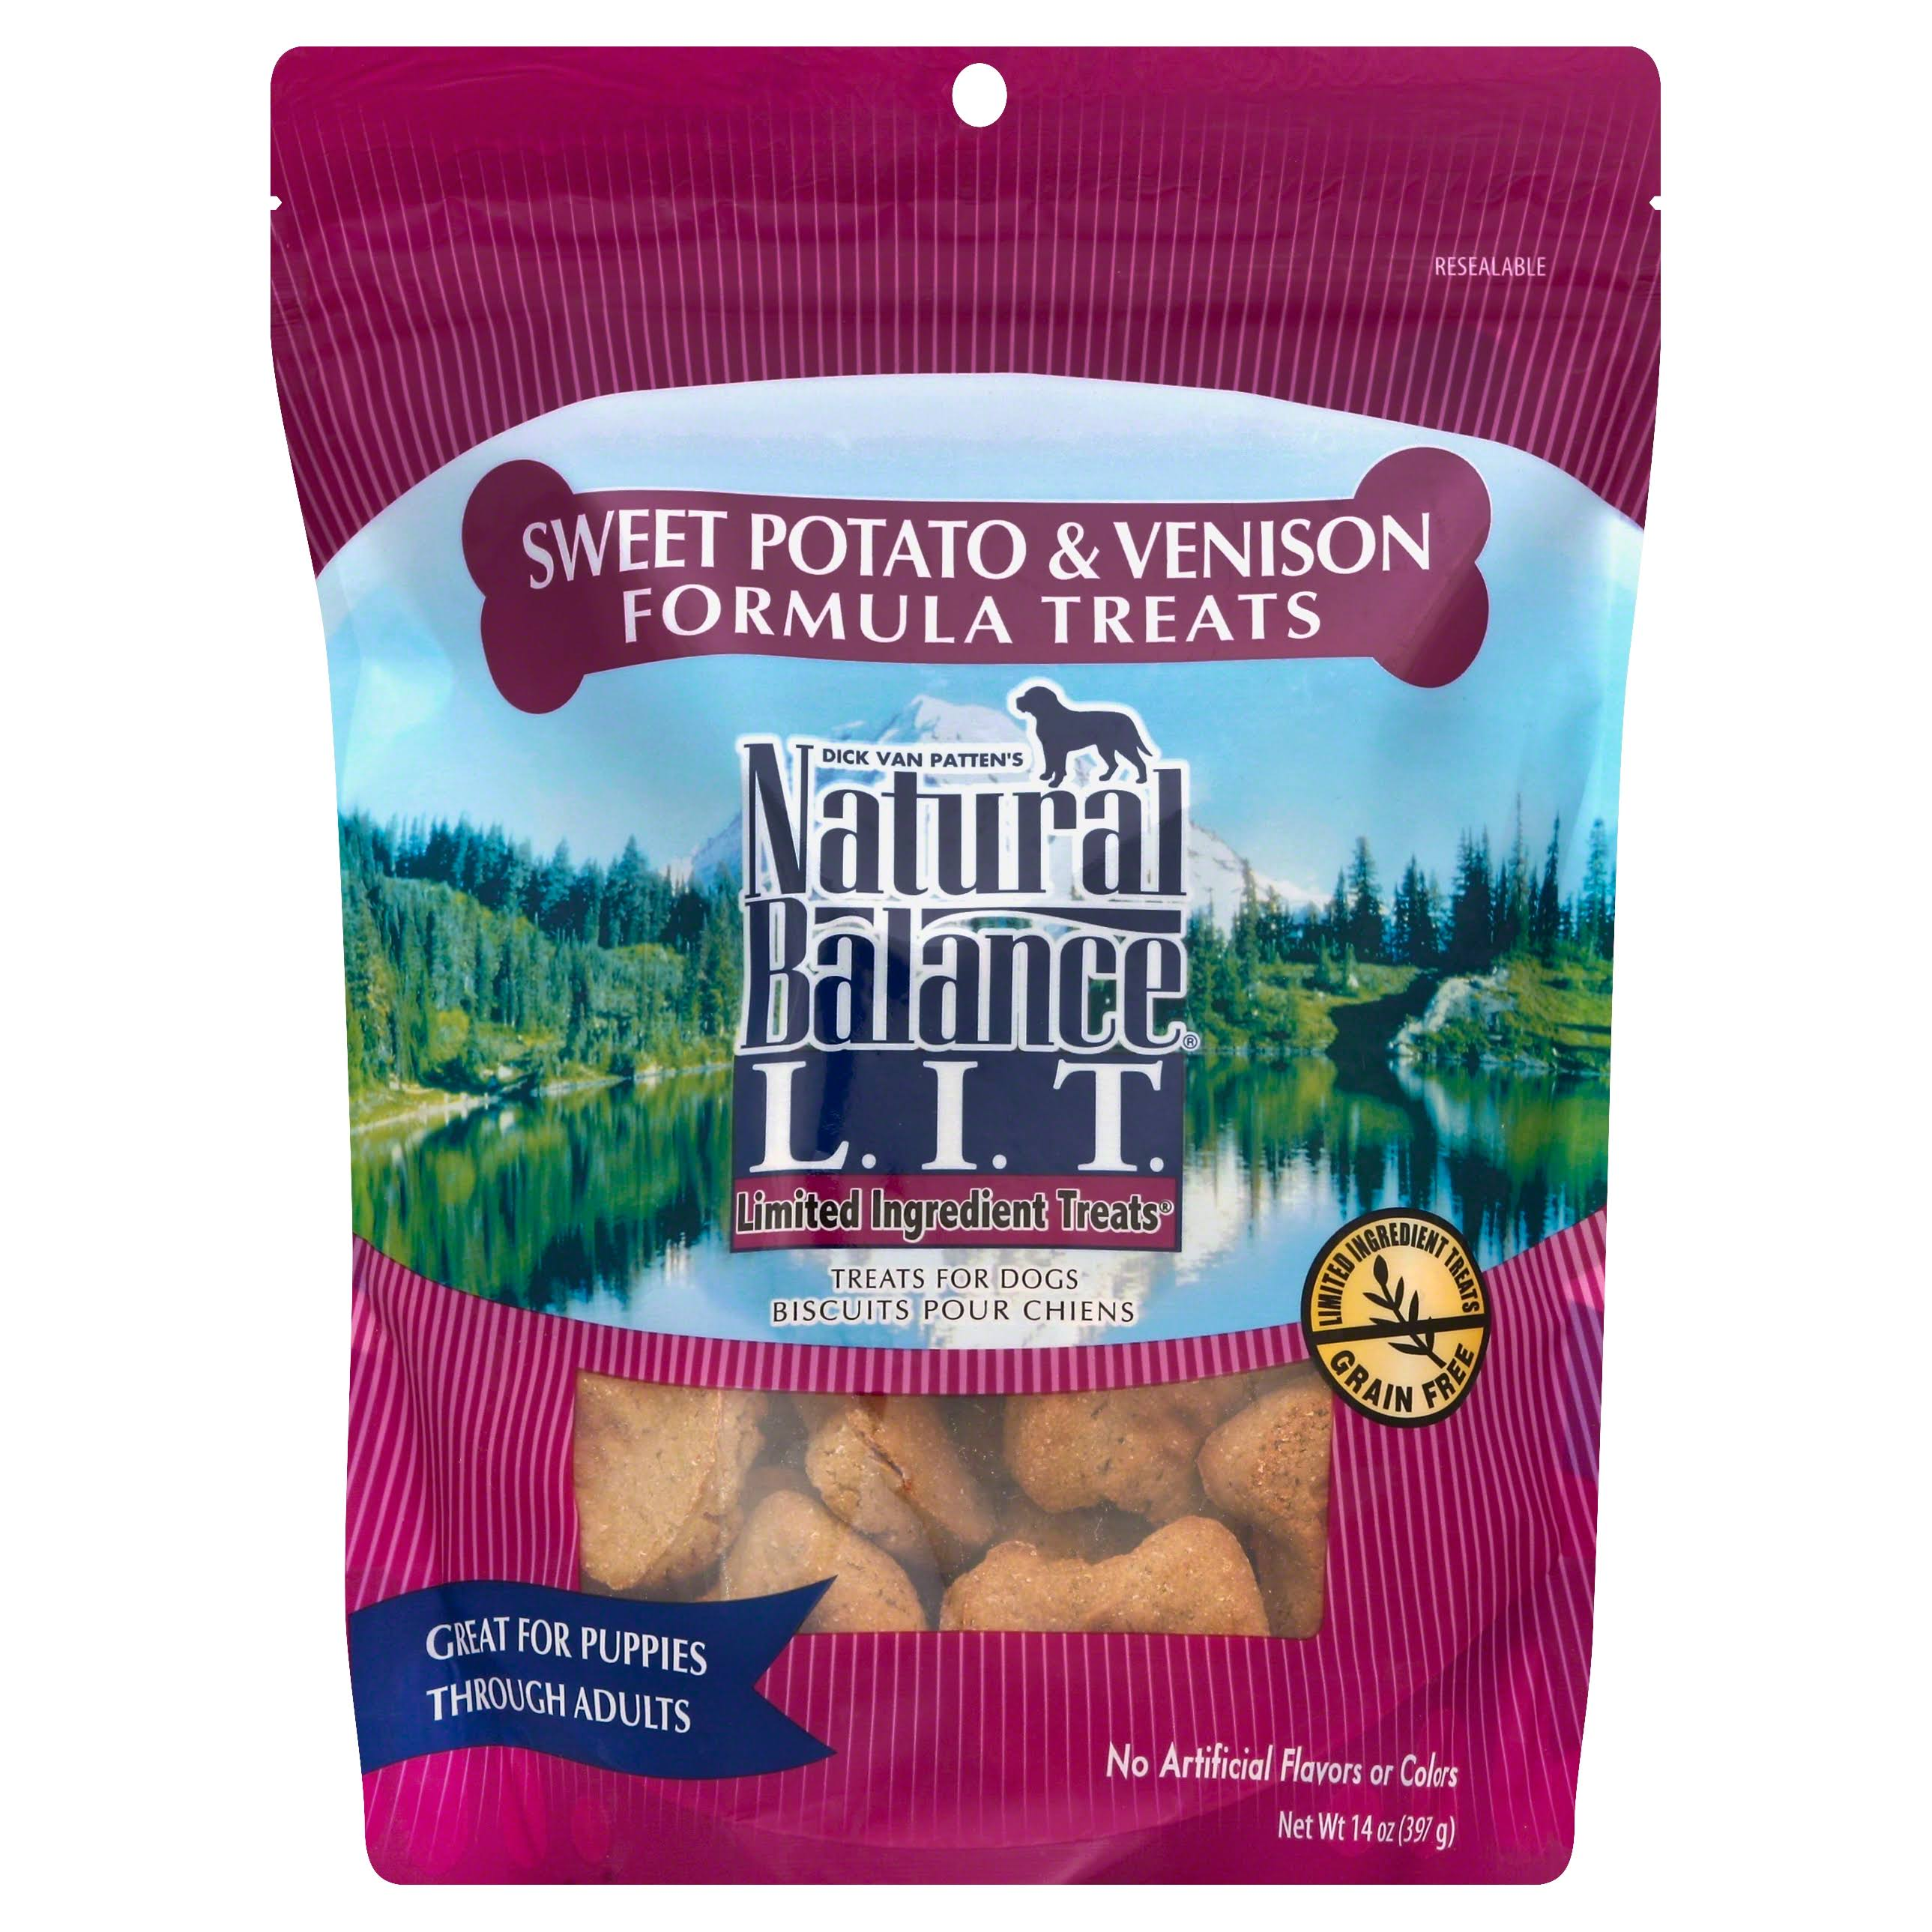 Natural Balance L.I.T. Sweet Potato & Venison Dog Treats - 14 oz bag